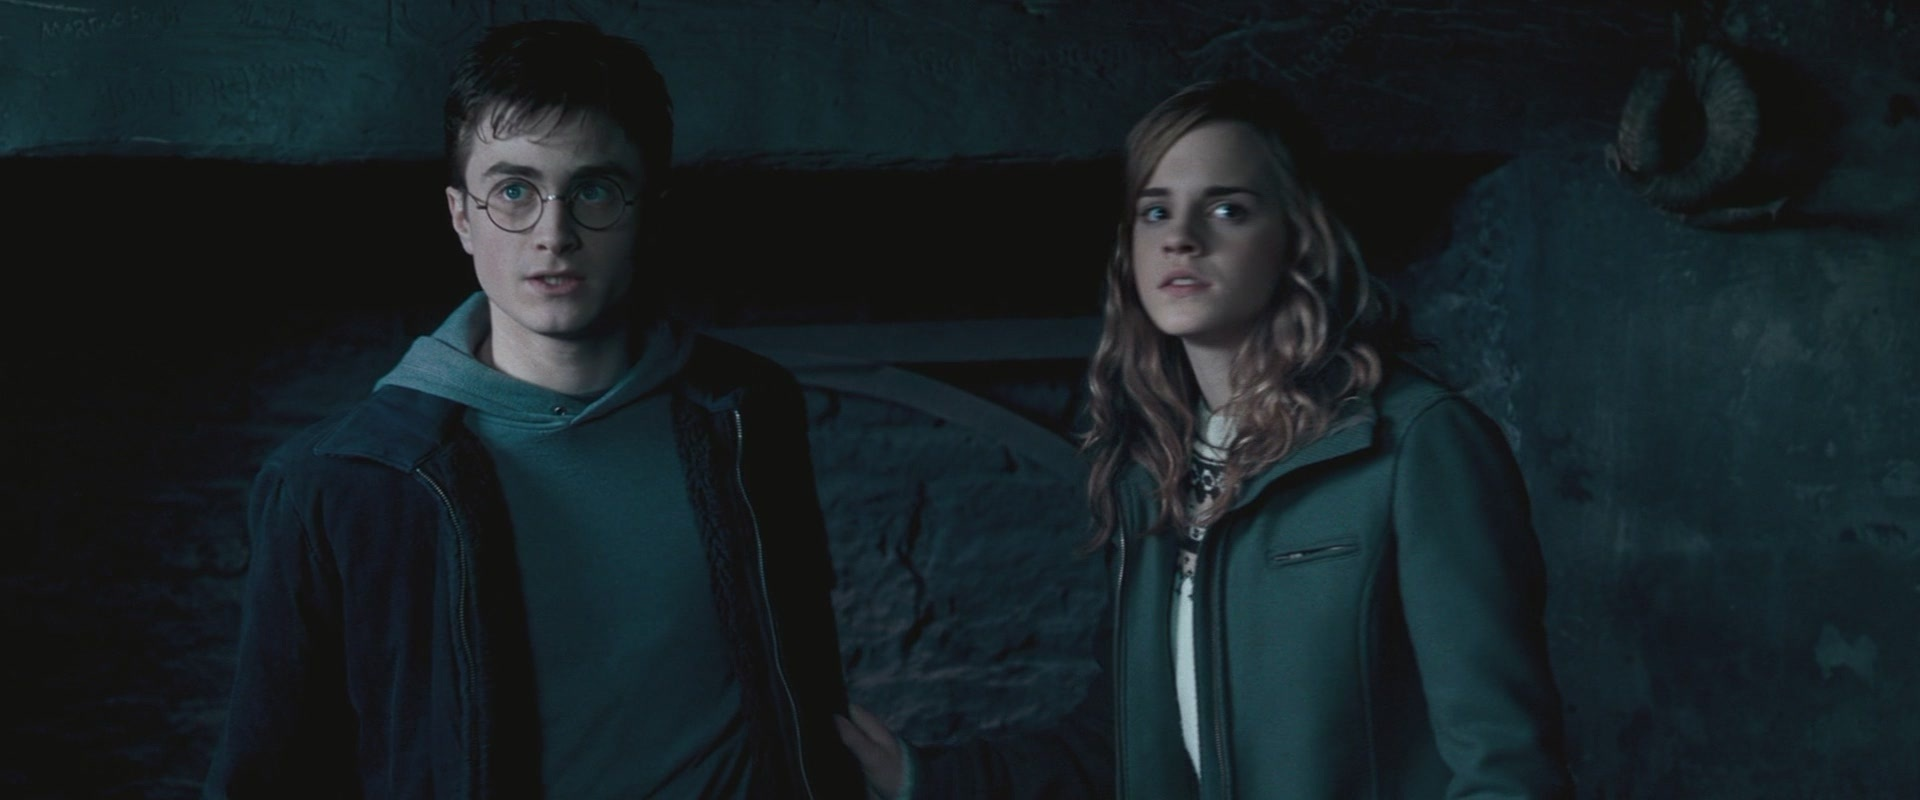 Romione images harry potter and the order of the phoenix - Hermione granger harry potter and the order of the phoenix ...